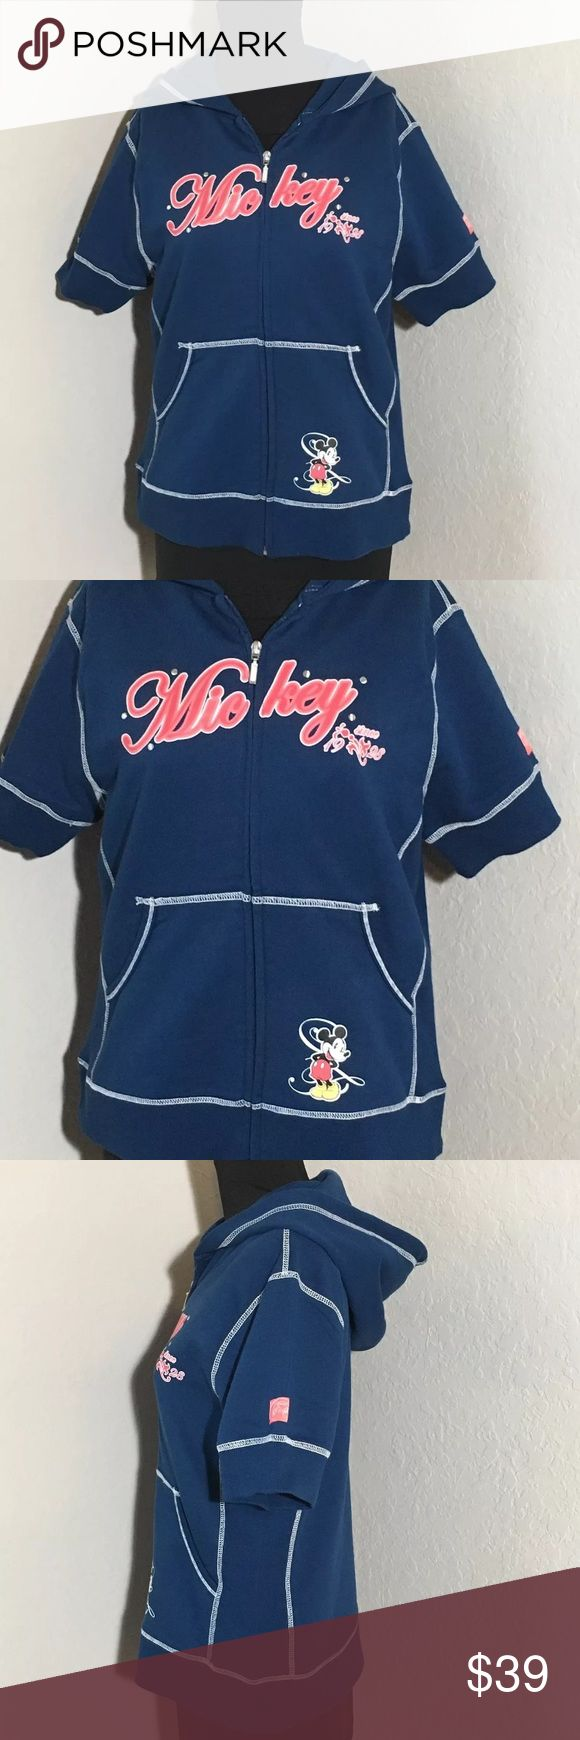 """Disney Mickey Mouse Short Sleeve Hooded Sweater M Women's Disney Direct short sleeve Mickey Mouse navy blue full zip up hooded sweater. Size M 20"""" armpit to armpit, 23.5"""" shoulder to hem. Excellent condition no flaws Disney Tops Sweatshirts & Hoodies"""